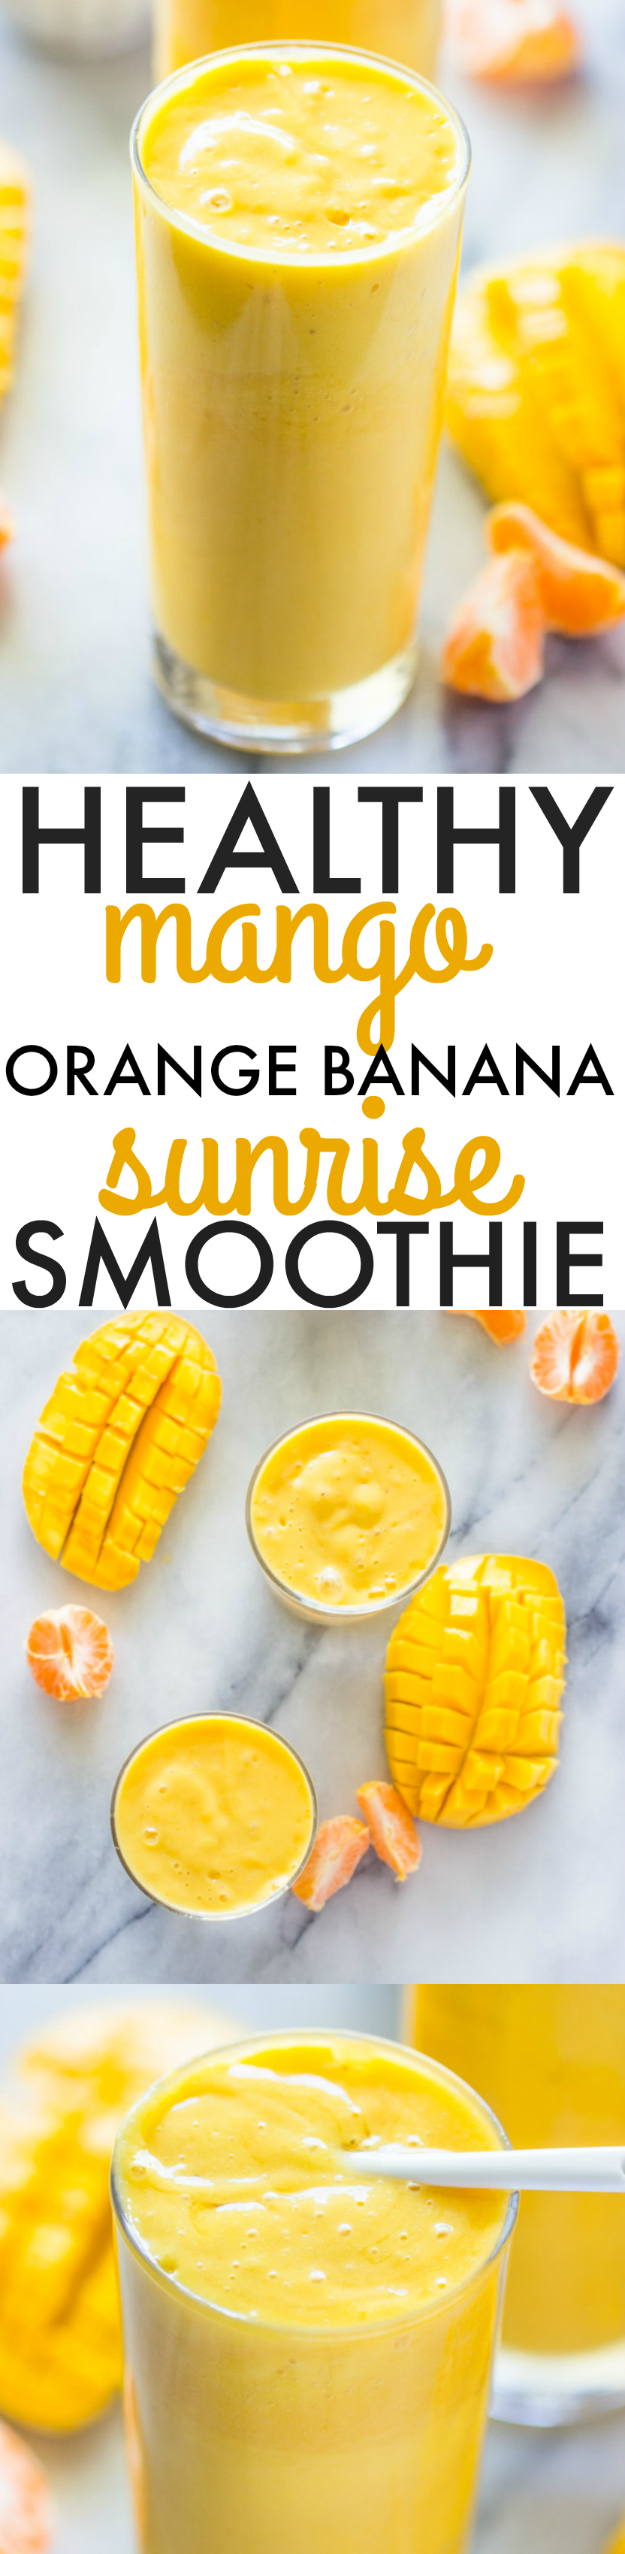 Healthy Smoothie Recipes - Healthy Mango Orange Banana Sunrise Smoothie - Easy ideas perfect for breakfast, energy. Low calorie and high protein recipes for weightloss and to lose weight. Simple homemade recipe ideas that kids love. Quick EASY morning recipes before work and school, after workout #smoothies #healthy #smoothie #healthyrecipes #recipes